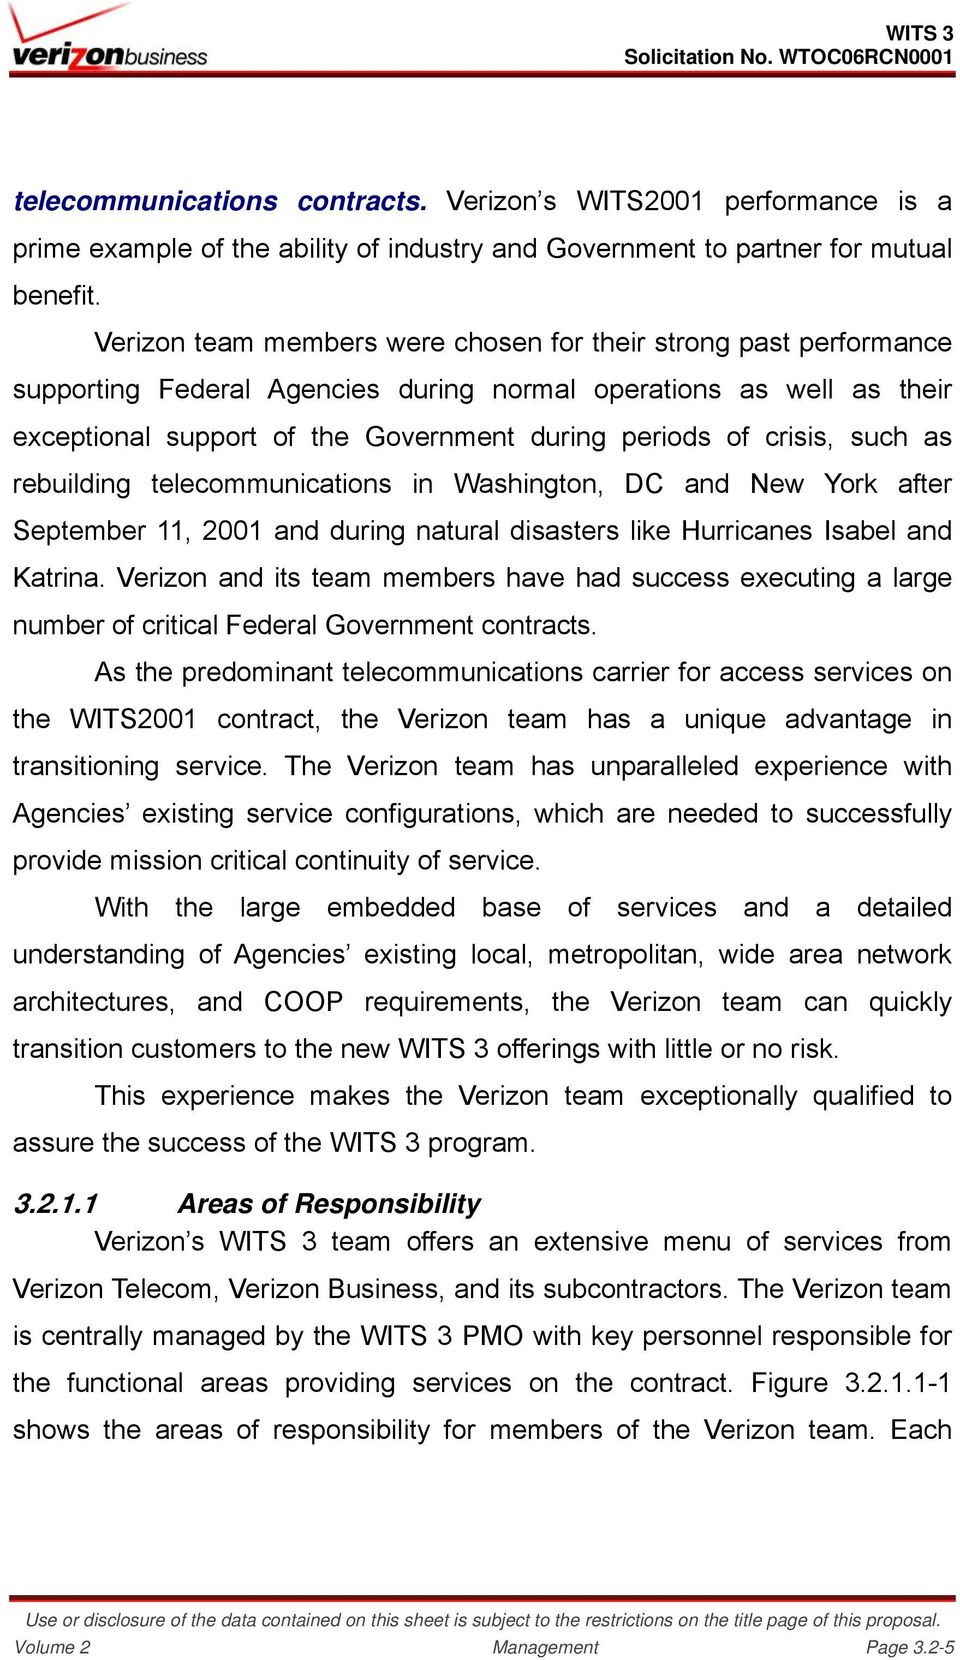 crisis, such as rebuilding telecommunications in Washington, DC and New York after September 11, 2001 and during natural disasters like Hurricanes Isabel and Katrina.